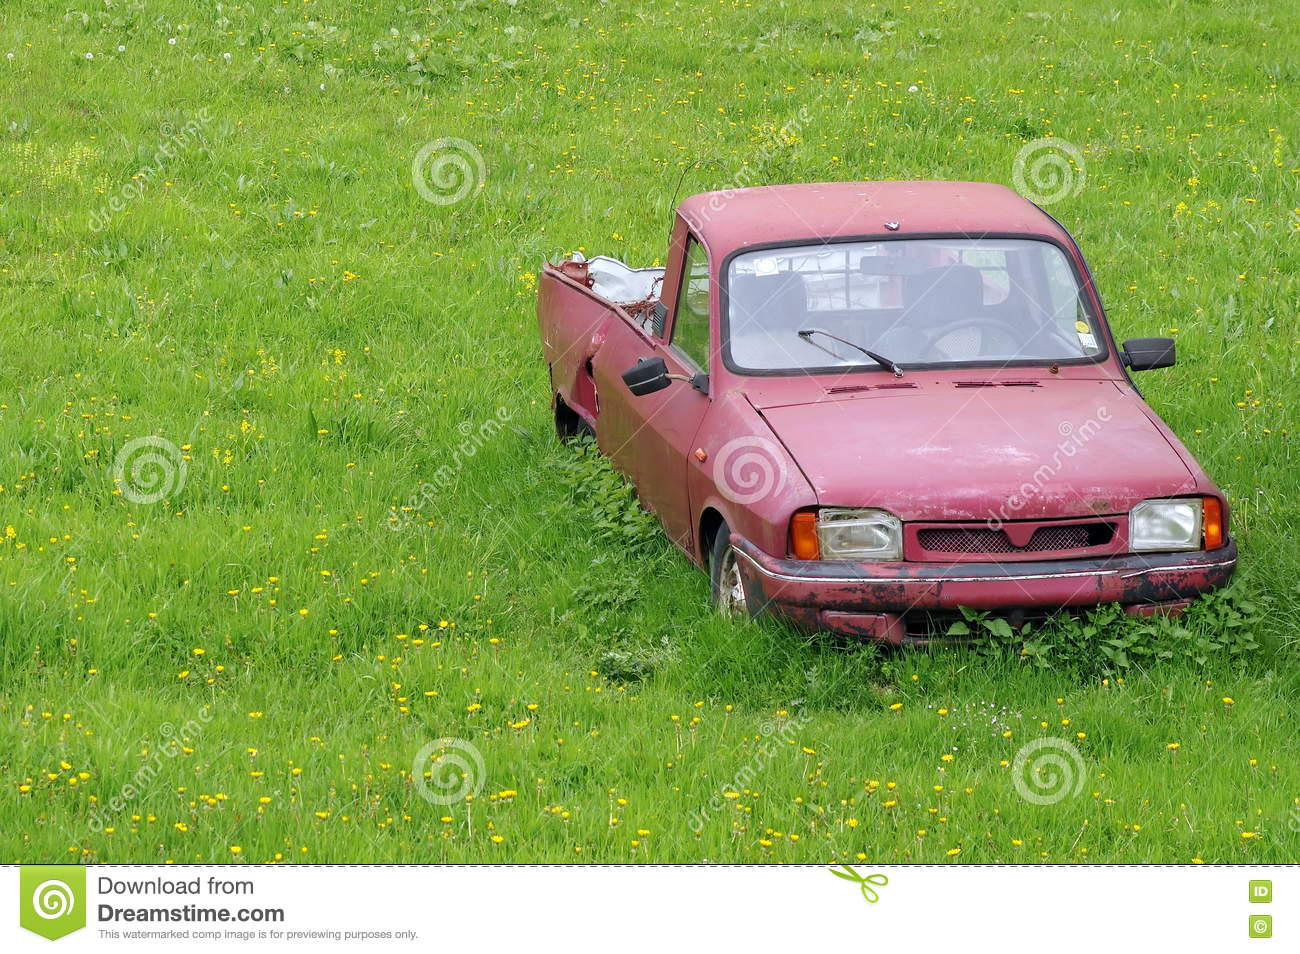 Junk Car Abandoned On A Meadow Stock Photo - Image of sport, engine ...